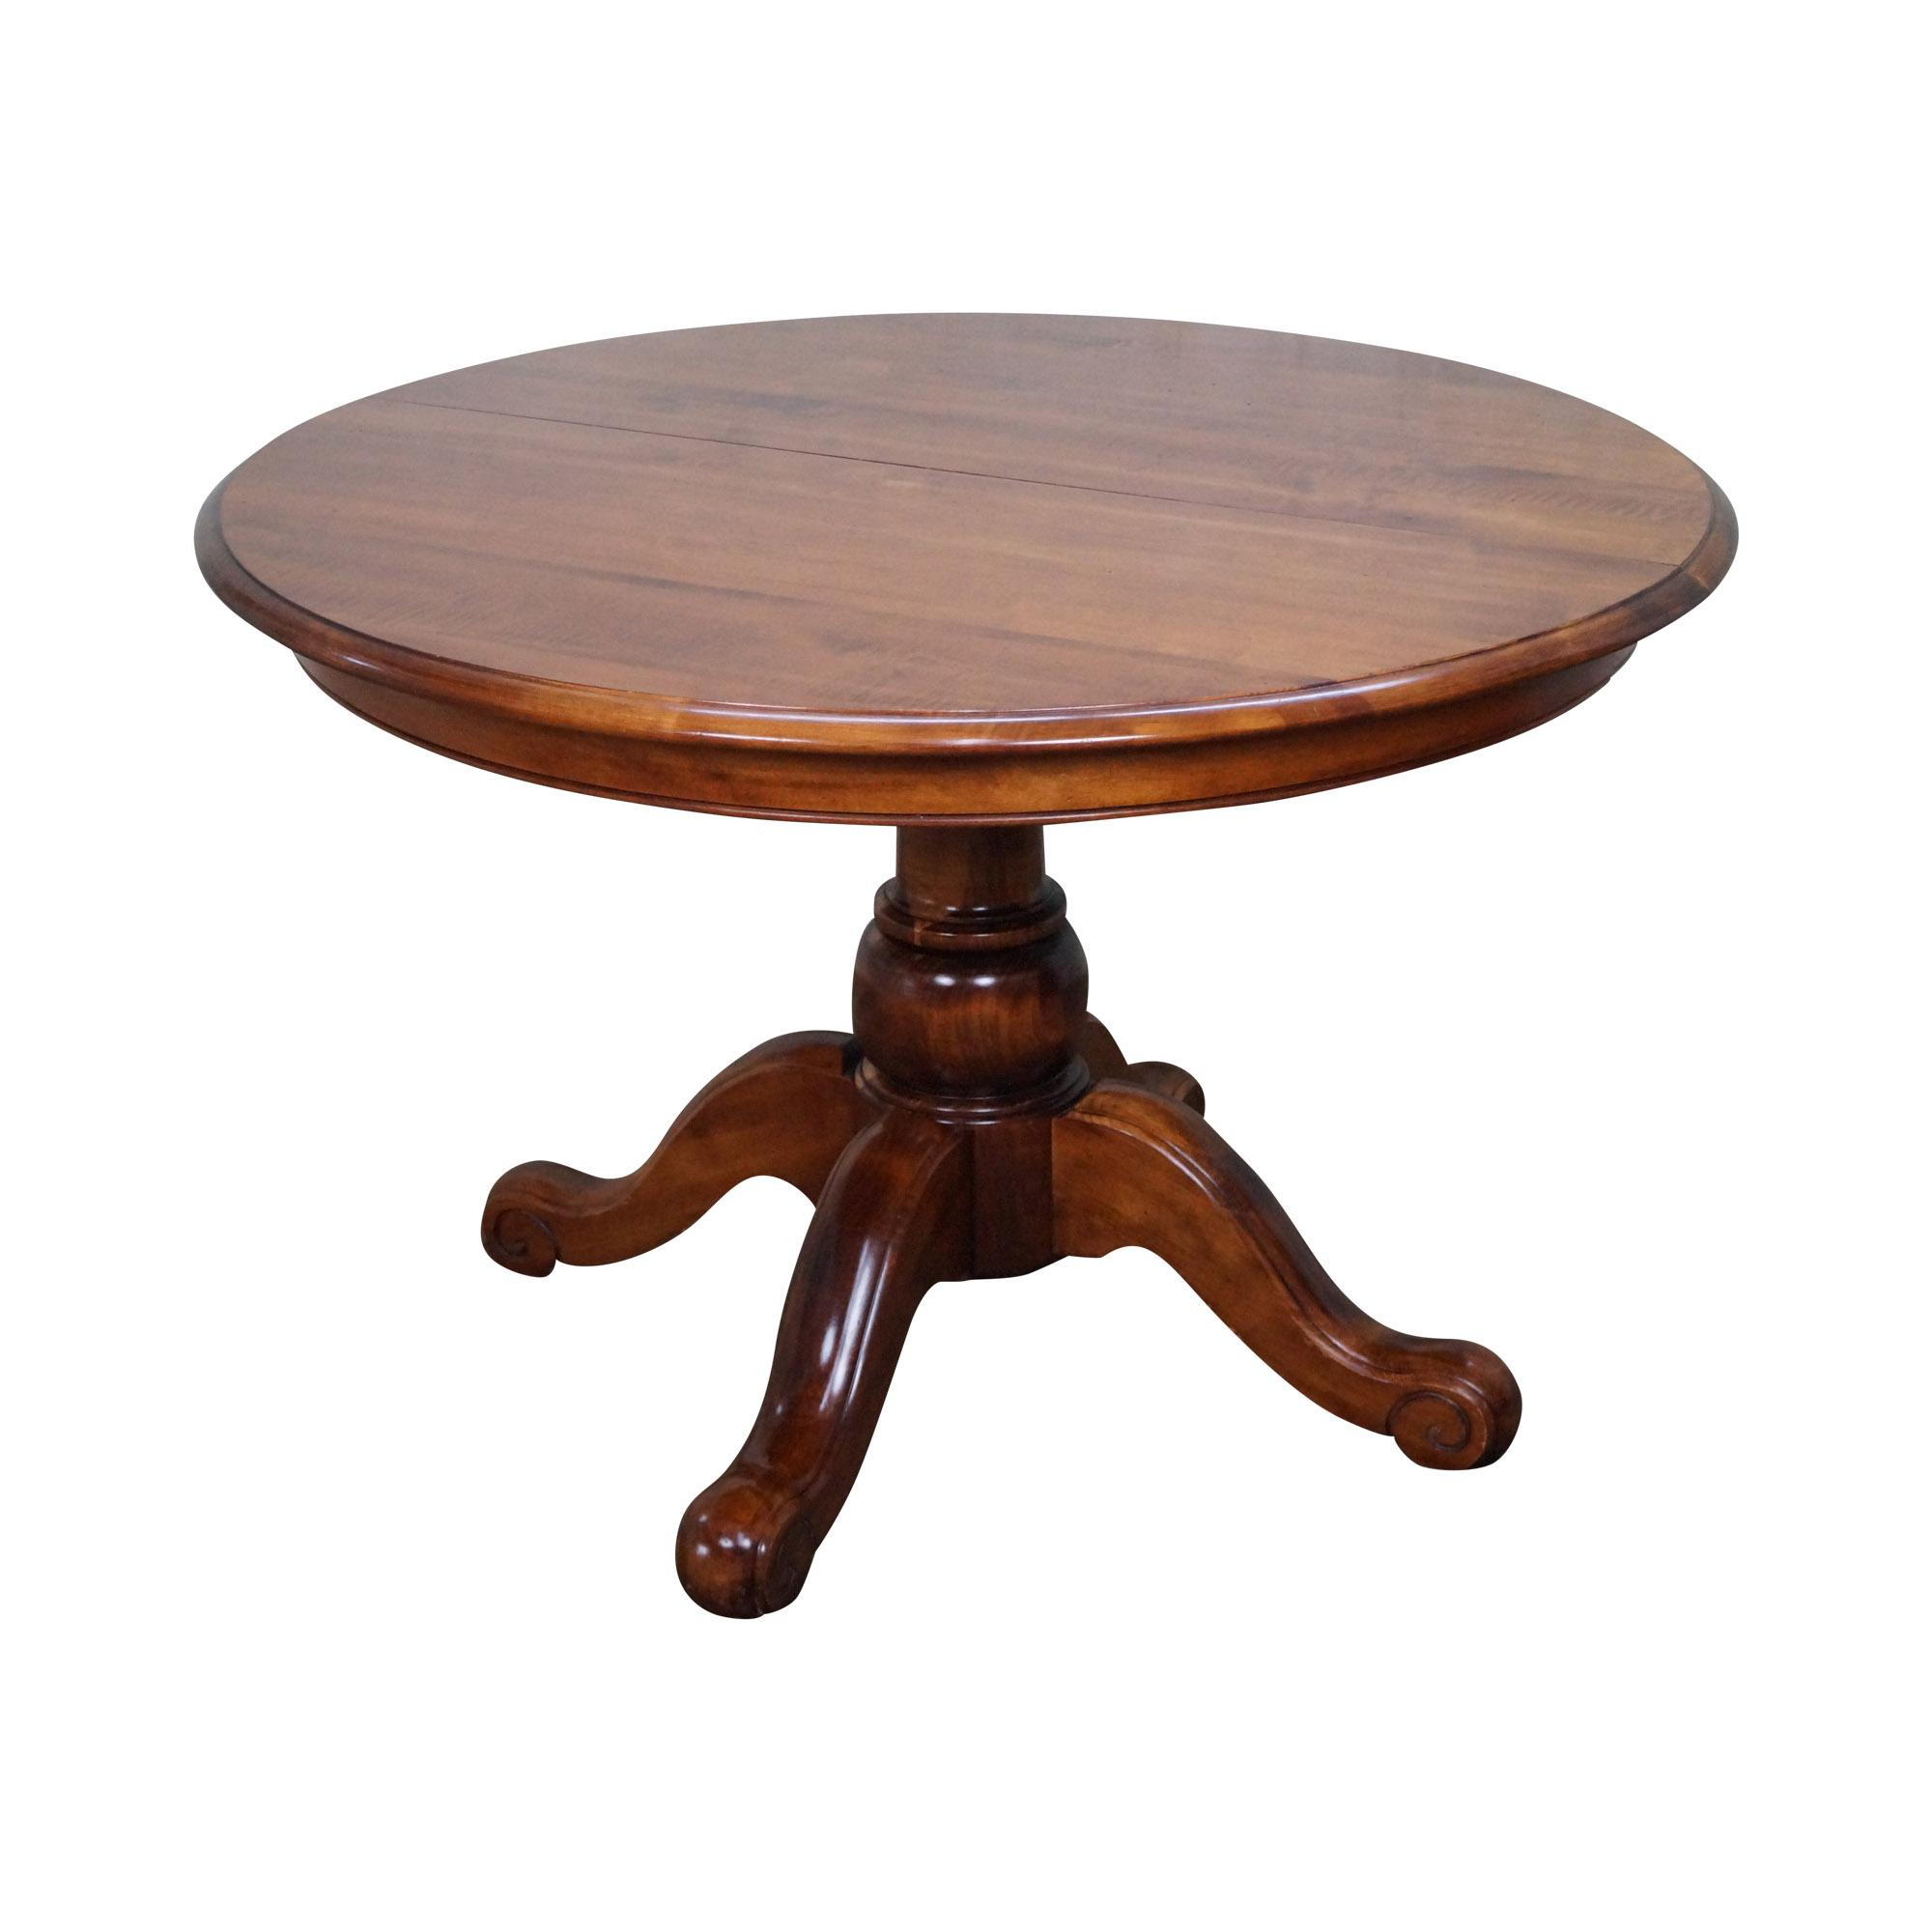 Ethan Allen Oval Dining Room Pedestal Table